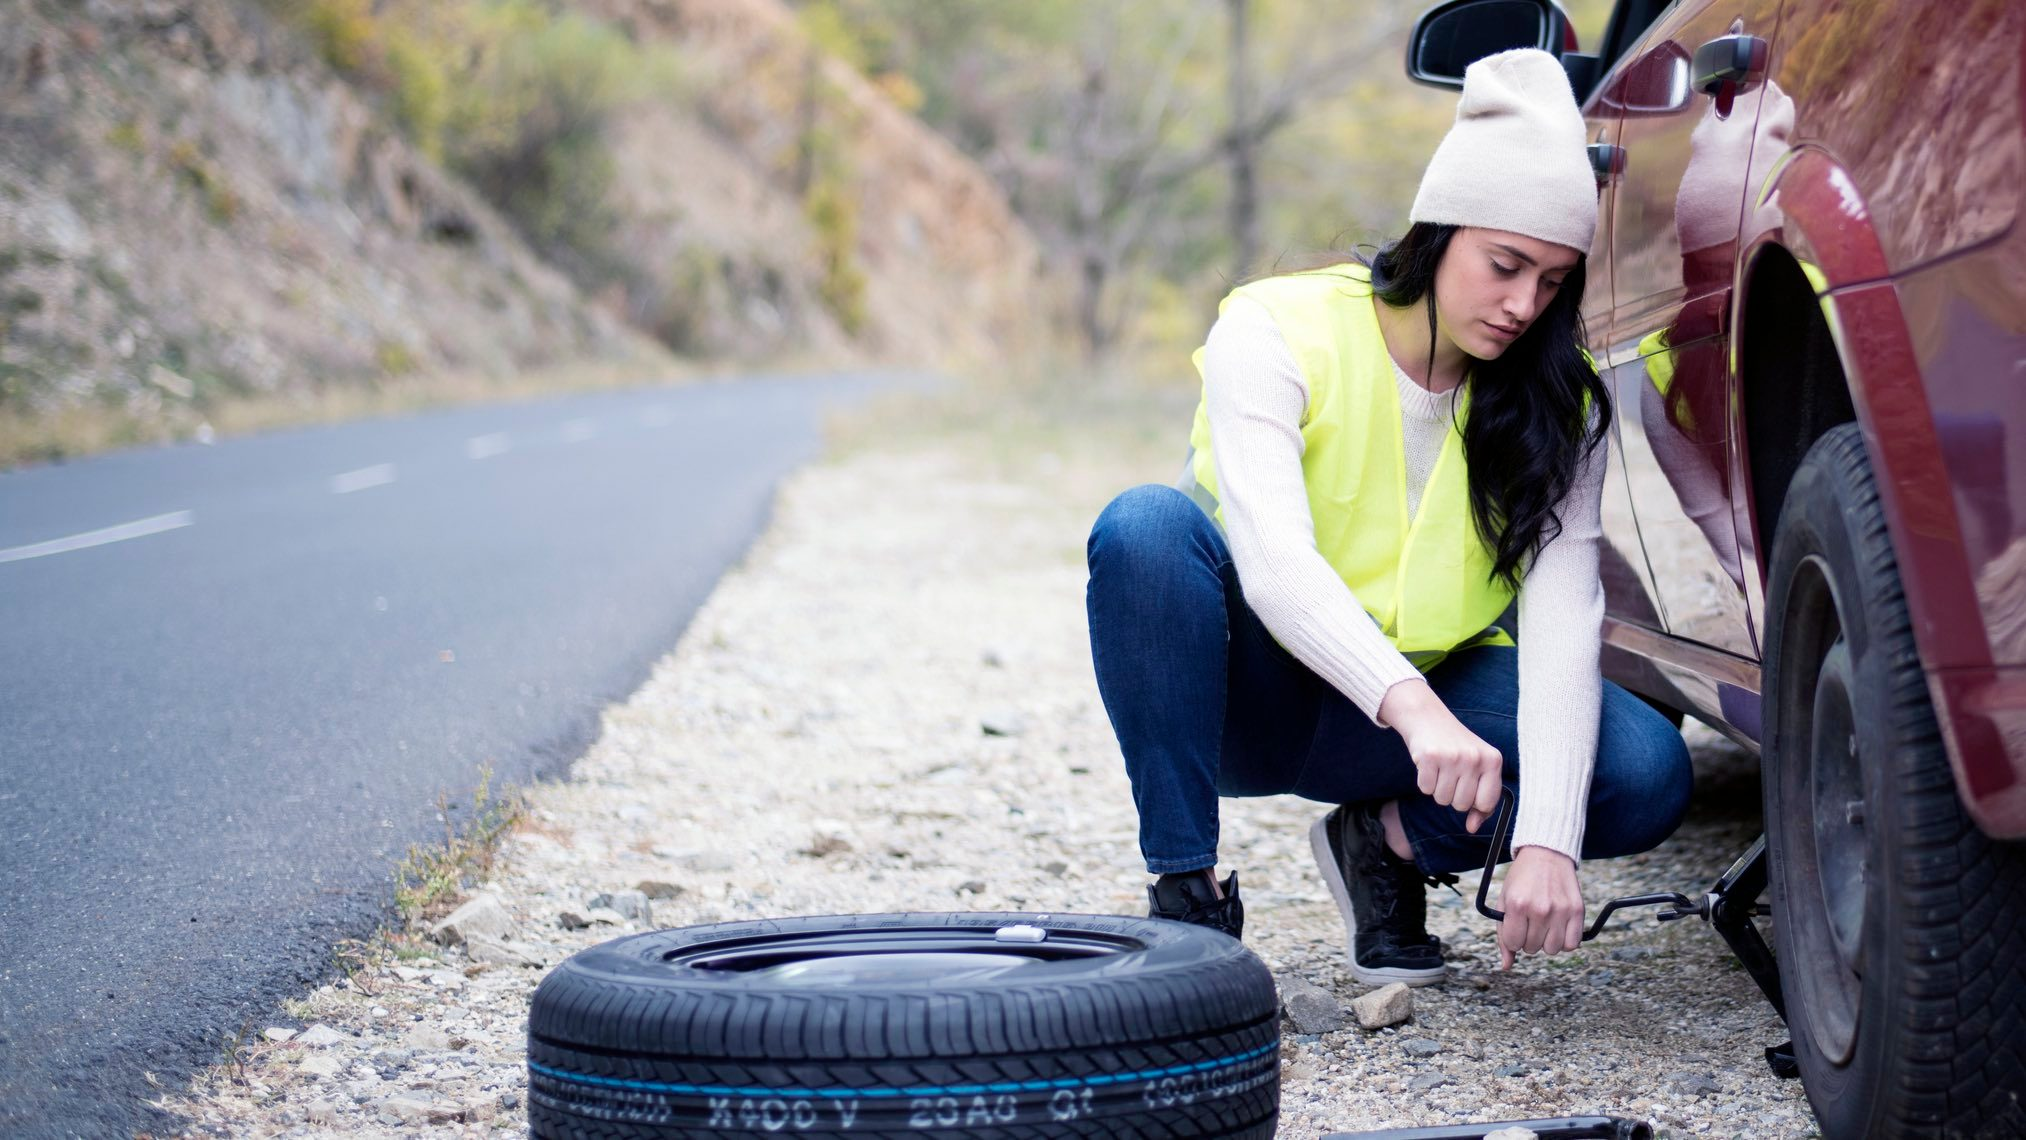 Woman with tyre insurance on the roadside changing a car tyre.